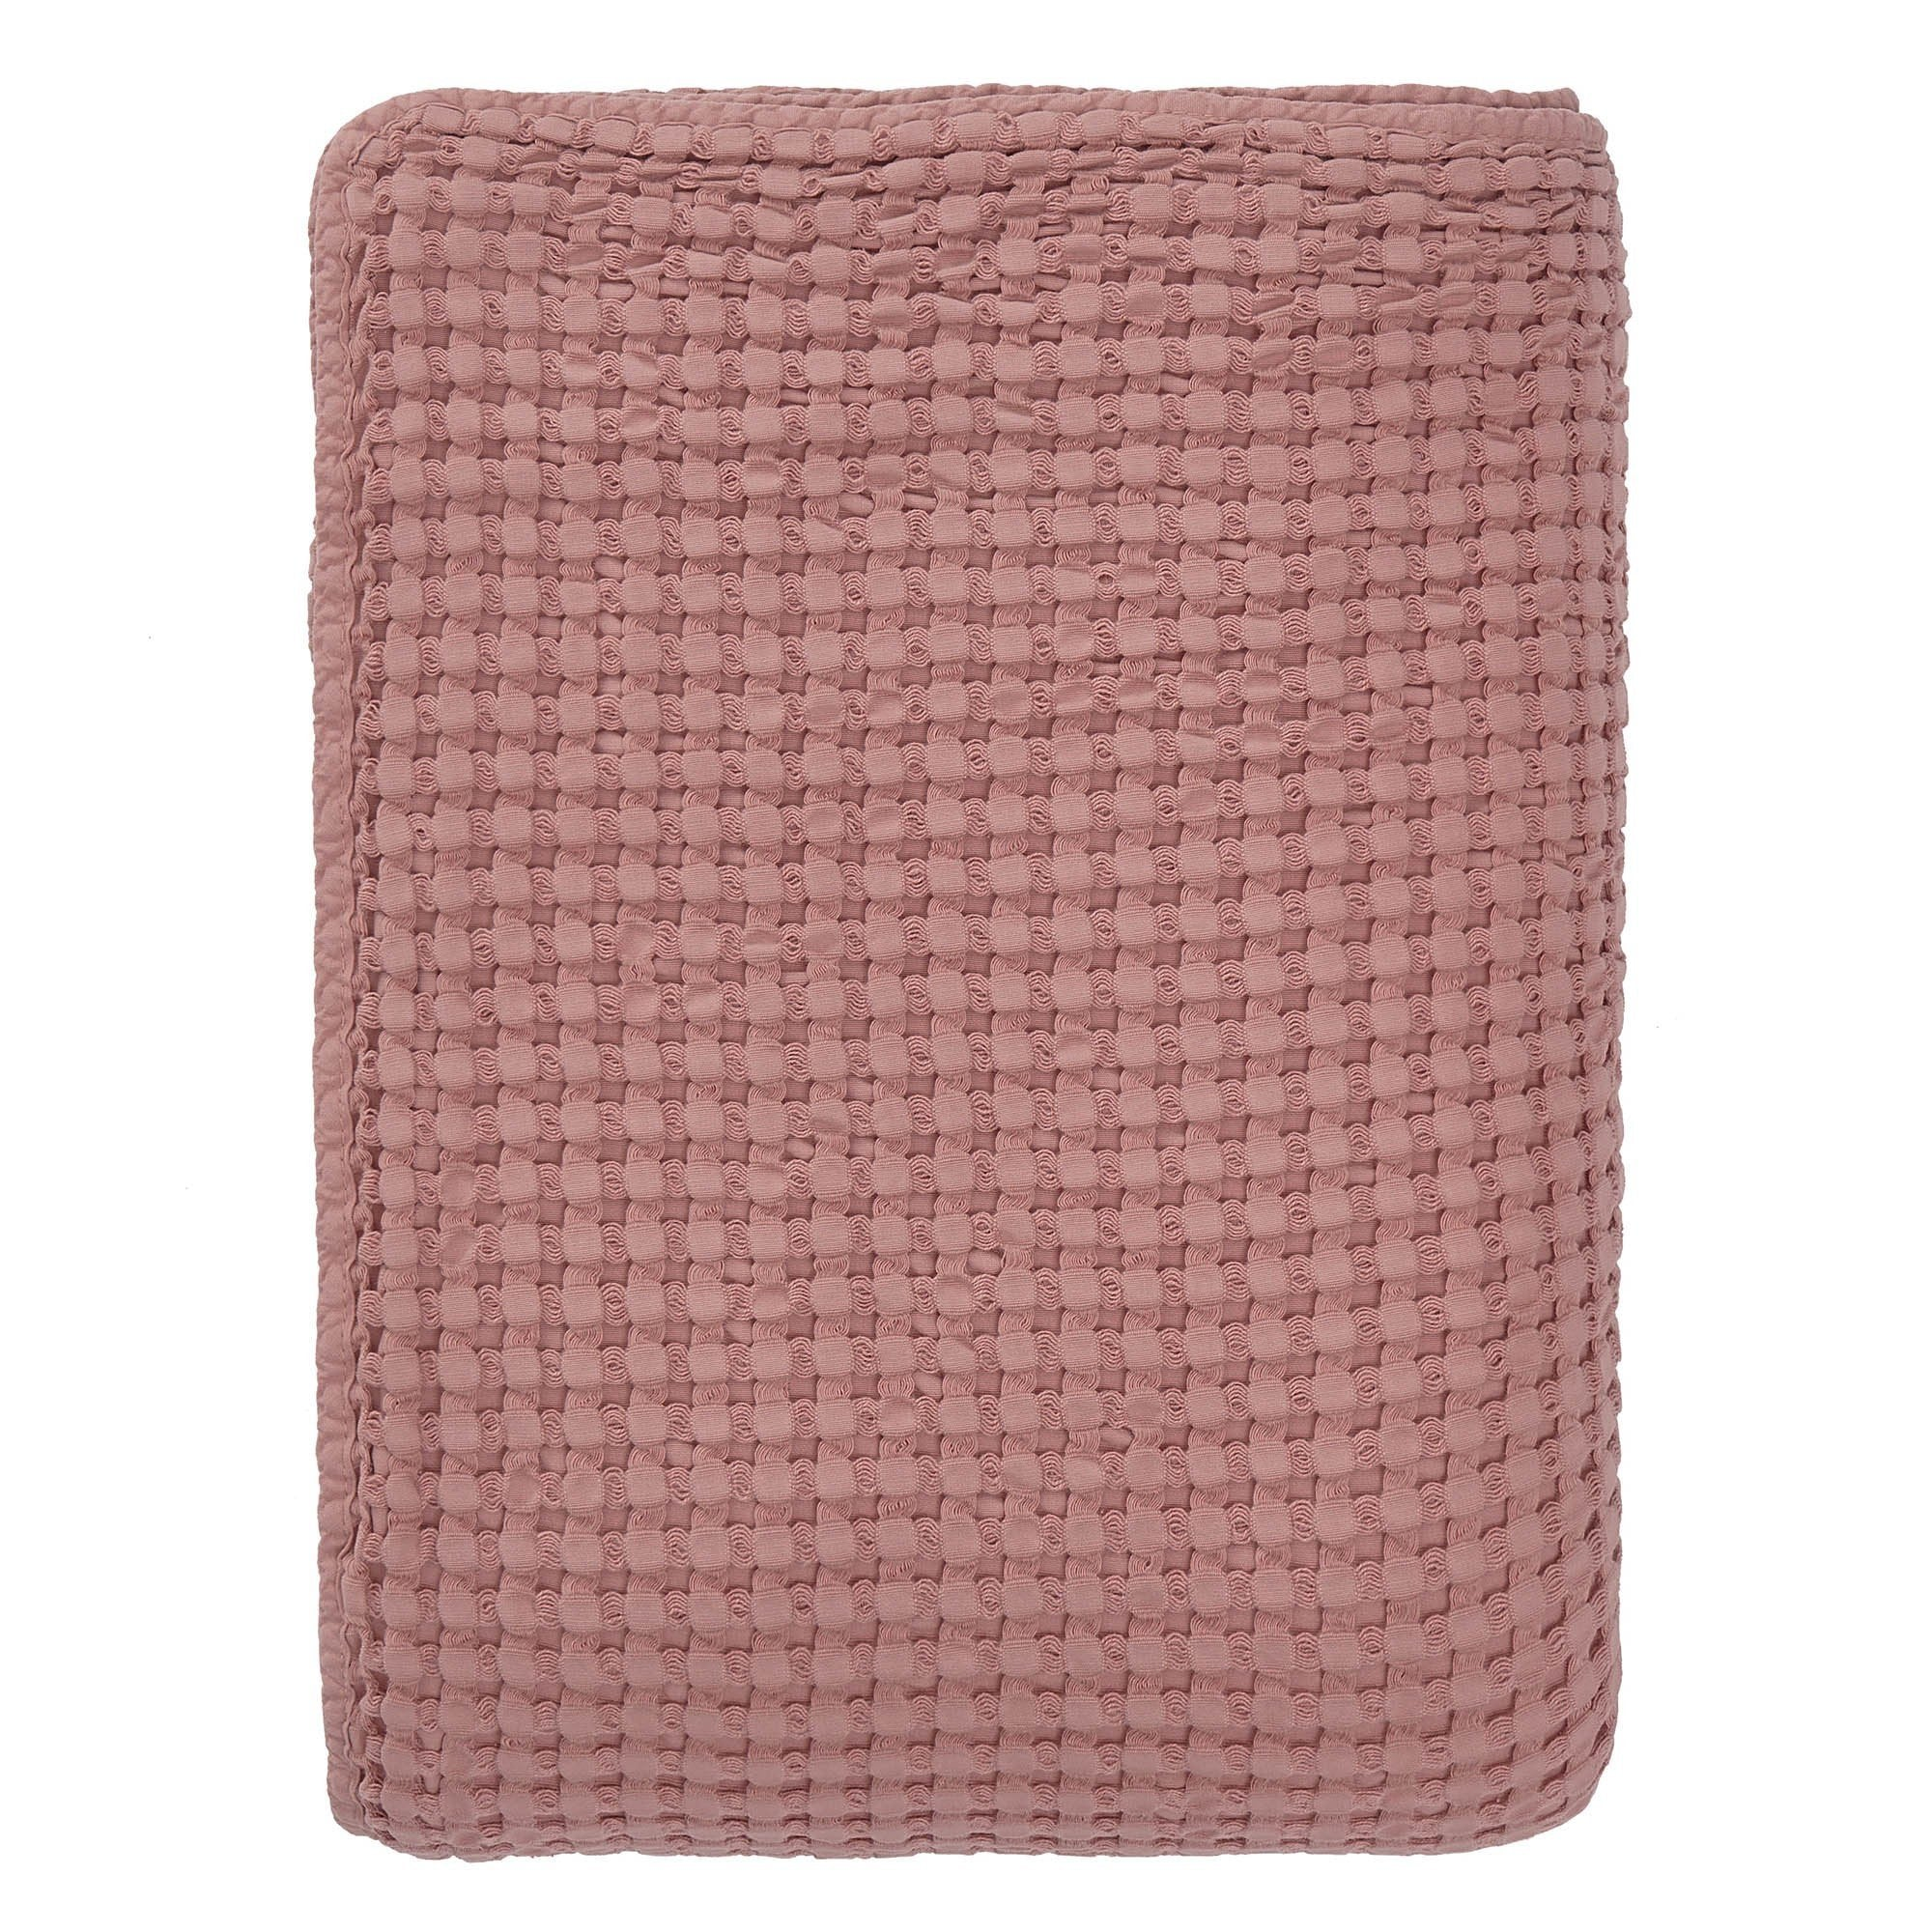 Veiros bedspread, dusty pink, 100% cotton